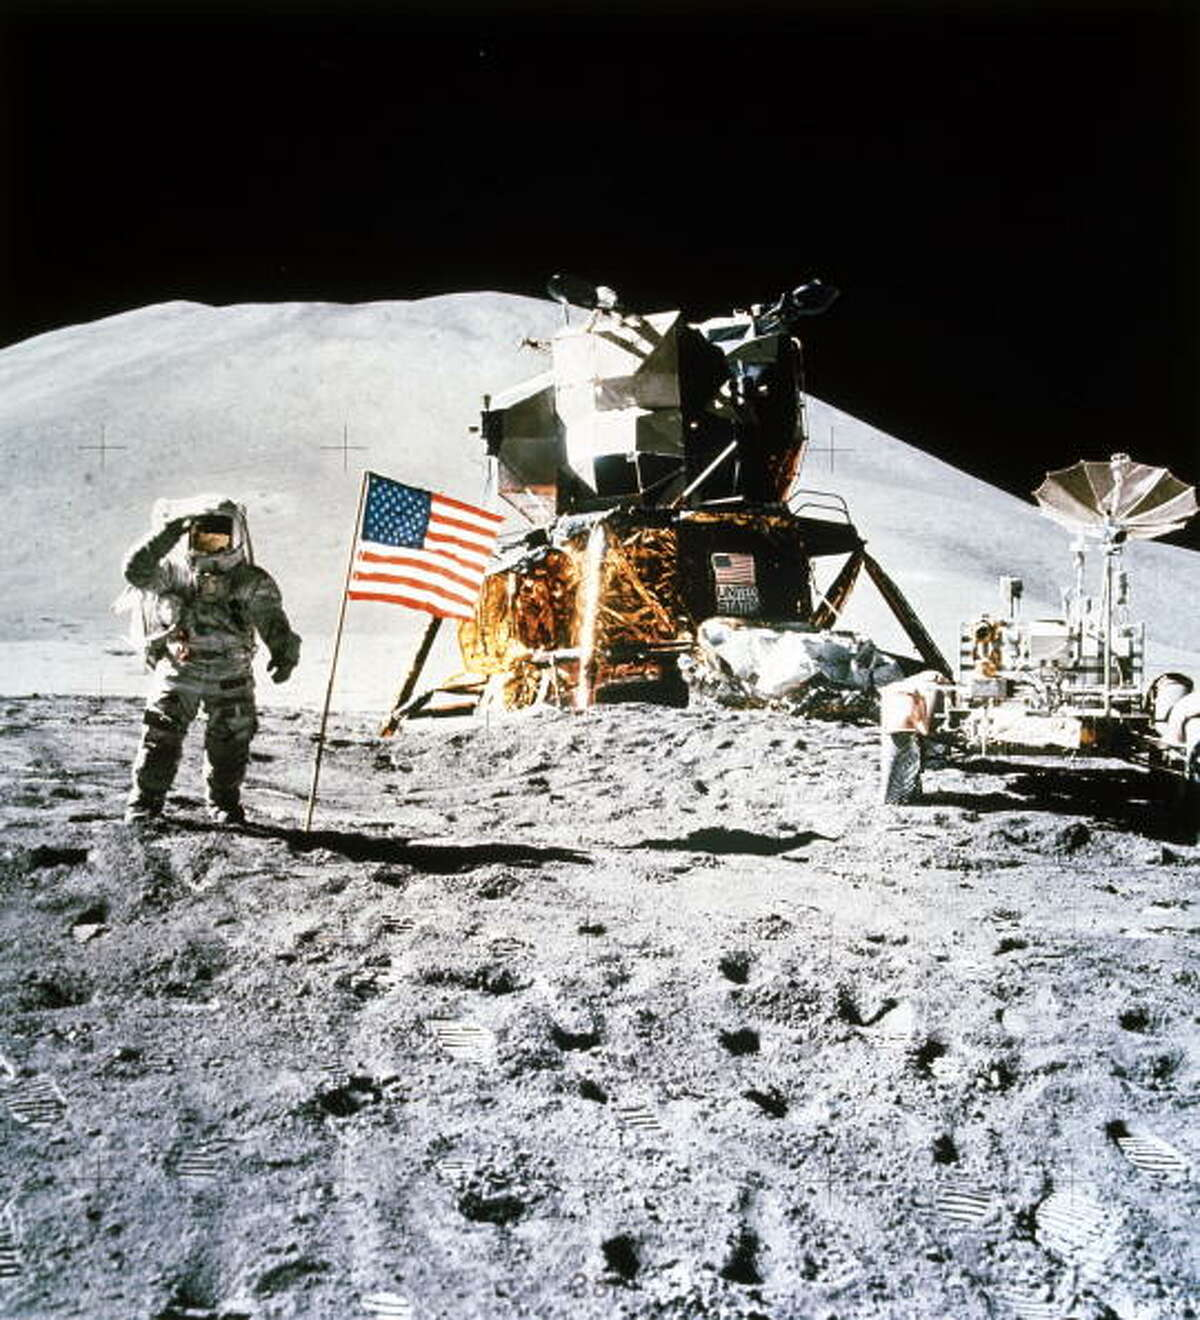 Astronaut James Irwin, with the Lunar Rover and the Lunar Module nearby, salutes the American flag planted on the surface of the Moon. Mount Hadley can be seen in the background. Apollo 15, the fourth successful lunar landing mission, was launched on 26th July 1971. It carried astronauts David Scott, Irwin and Alfred Worden. Worden remained in lunar orbit in the Apollo Command Module while the other two astronauts descended to the Moon, becoming the seventh and eighth men to walk on its surface. Apollo 15 was the first mission to use the battery powered Lunar Rover which, with a top speed of 14 kilometres per hour, considerably increased the distances that astronauts could cover while exploring the lunar surface.